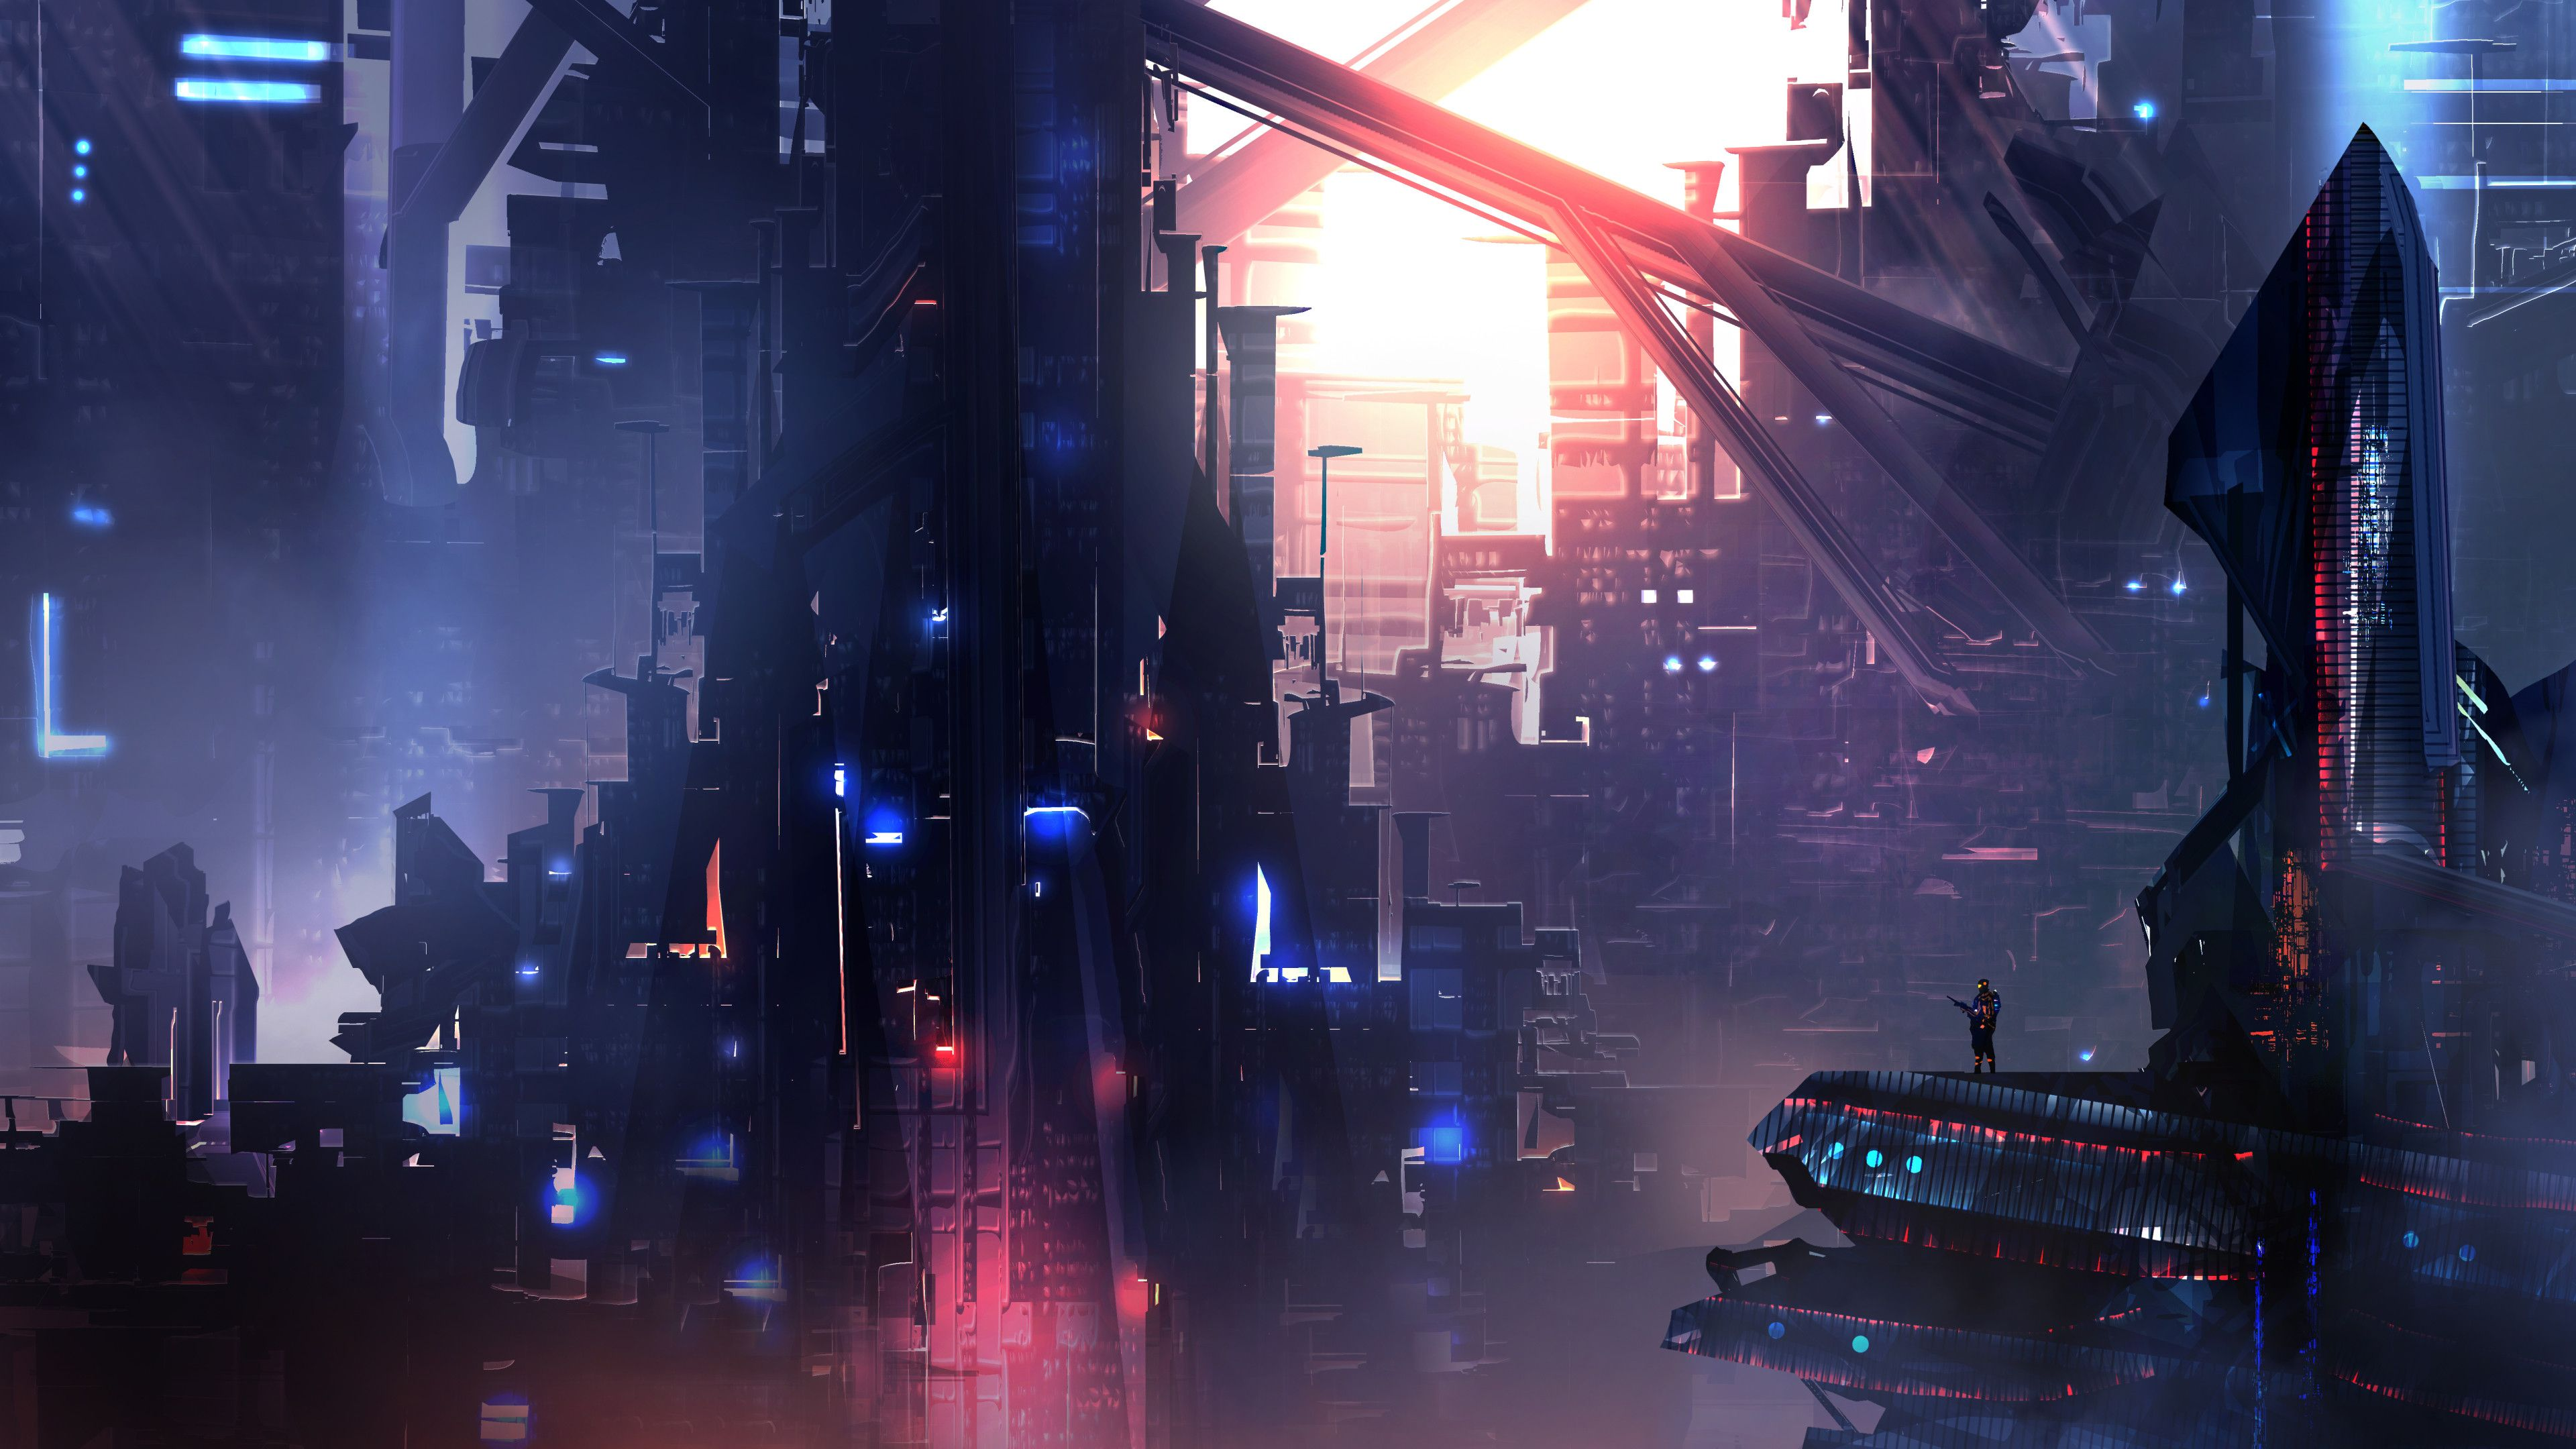 4k Sci Fi Wallpaper Dump Album On Imgur Sci Fi Wallpaper Cyberpunk Art Cyberpunk City